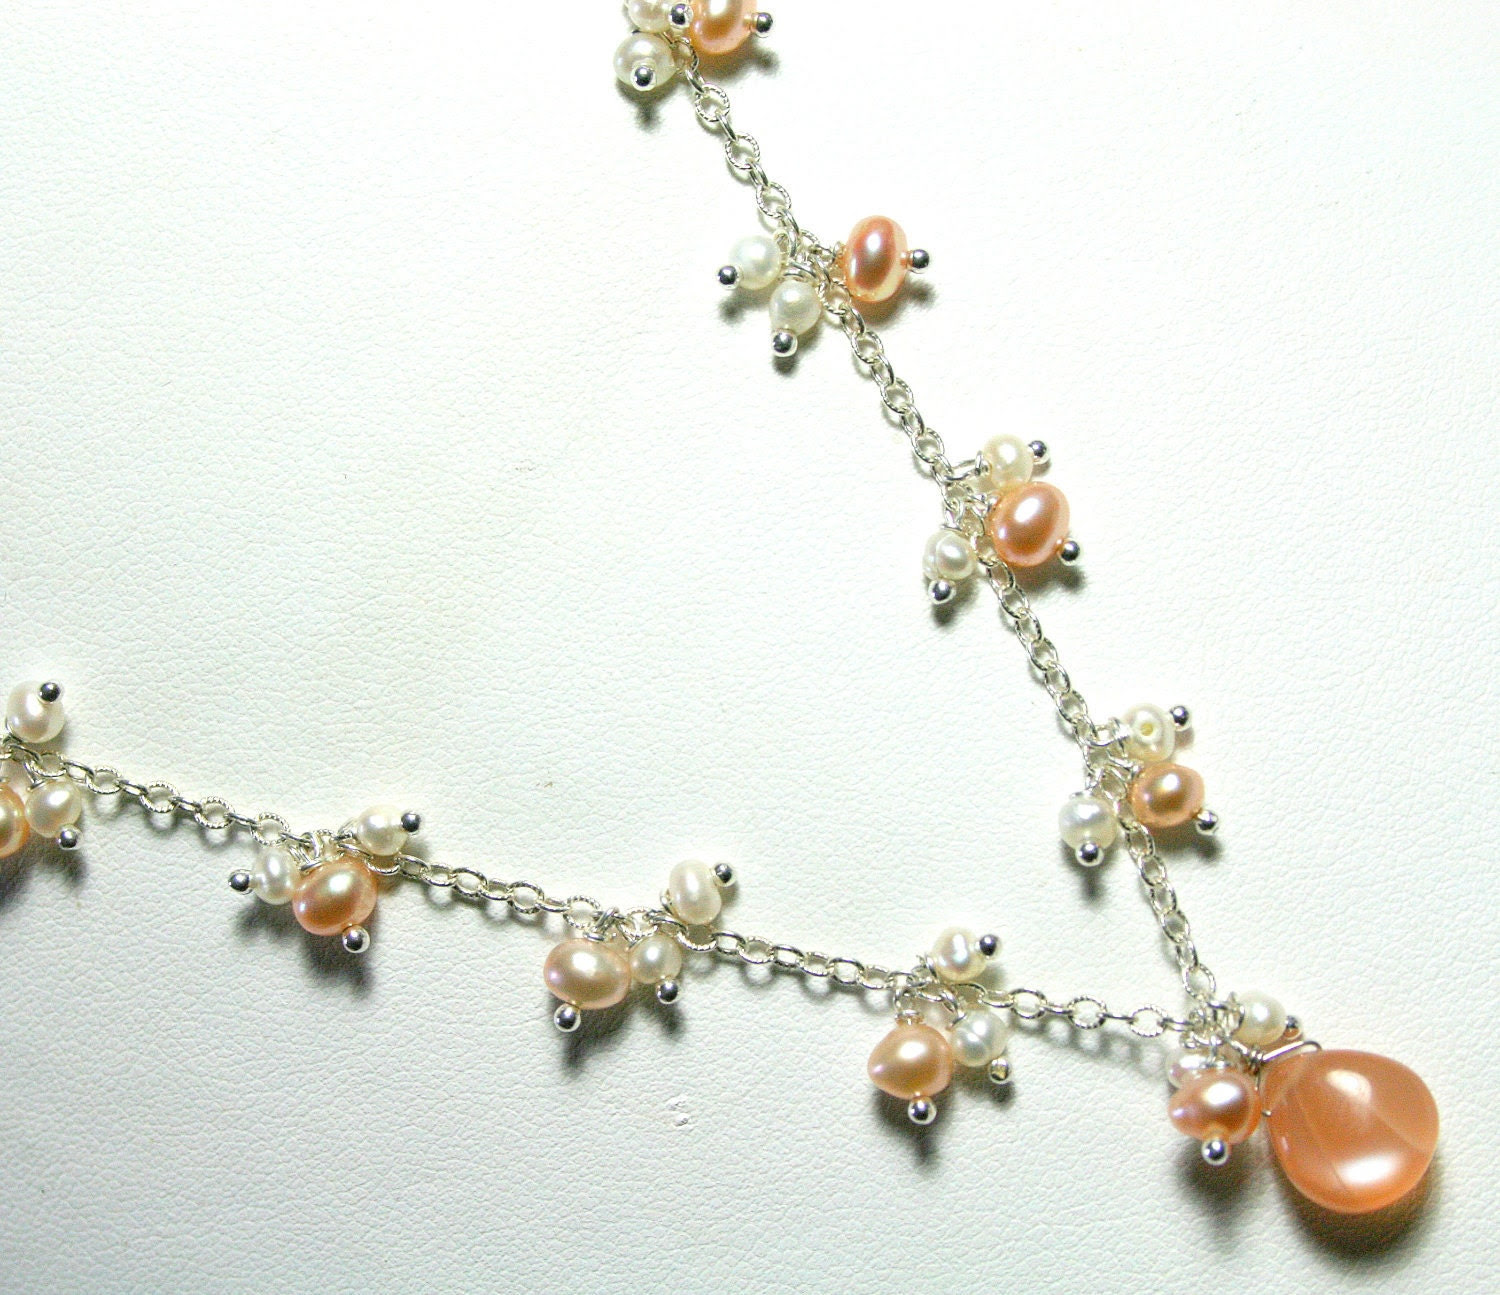 Pearl Cluster Necklace - Peach White Moonstone Teardrop - Sterling Silver Chain